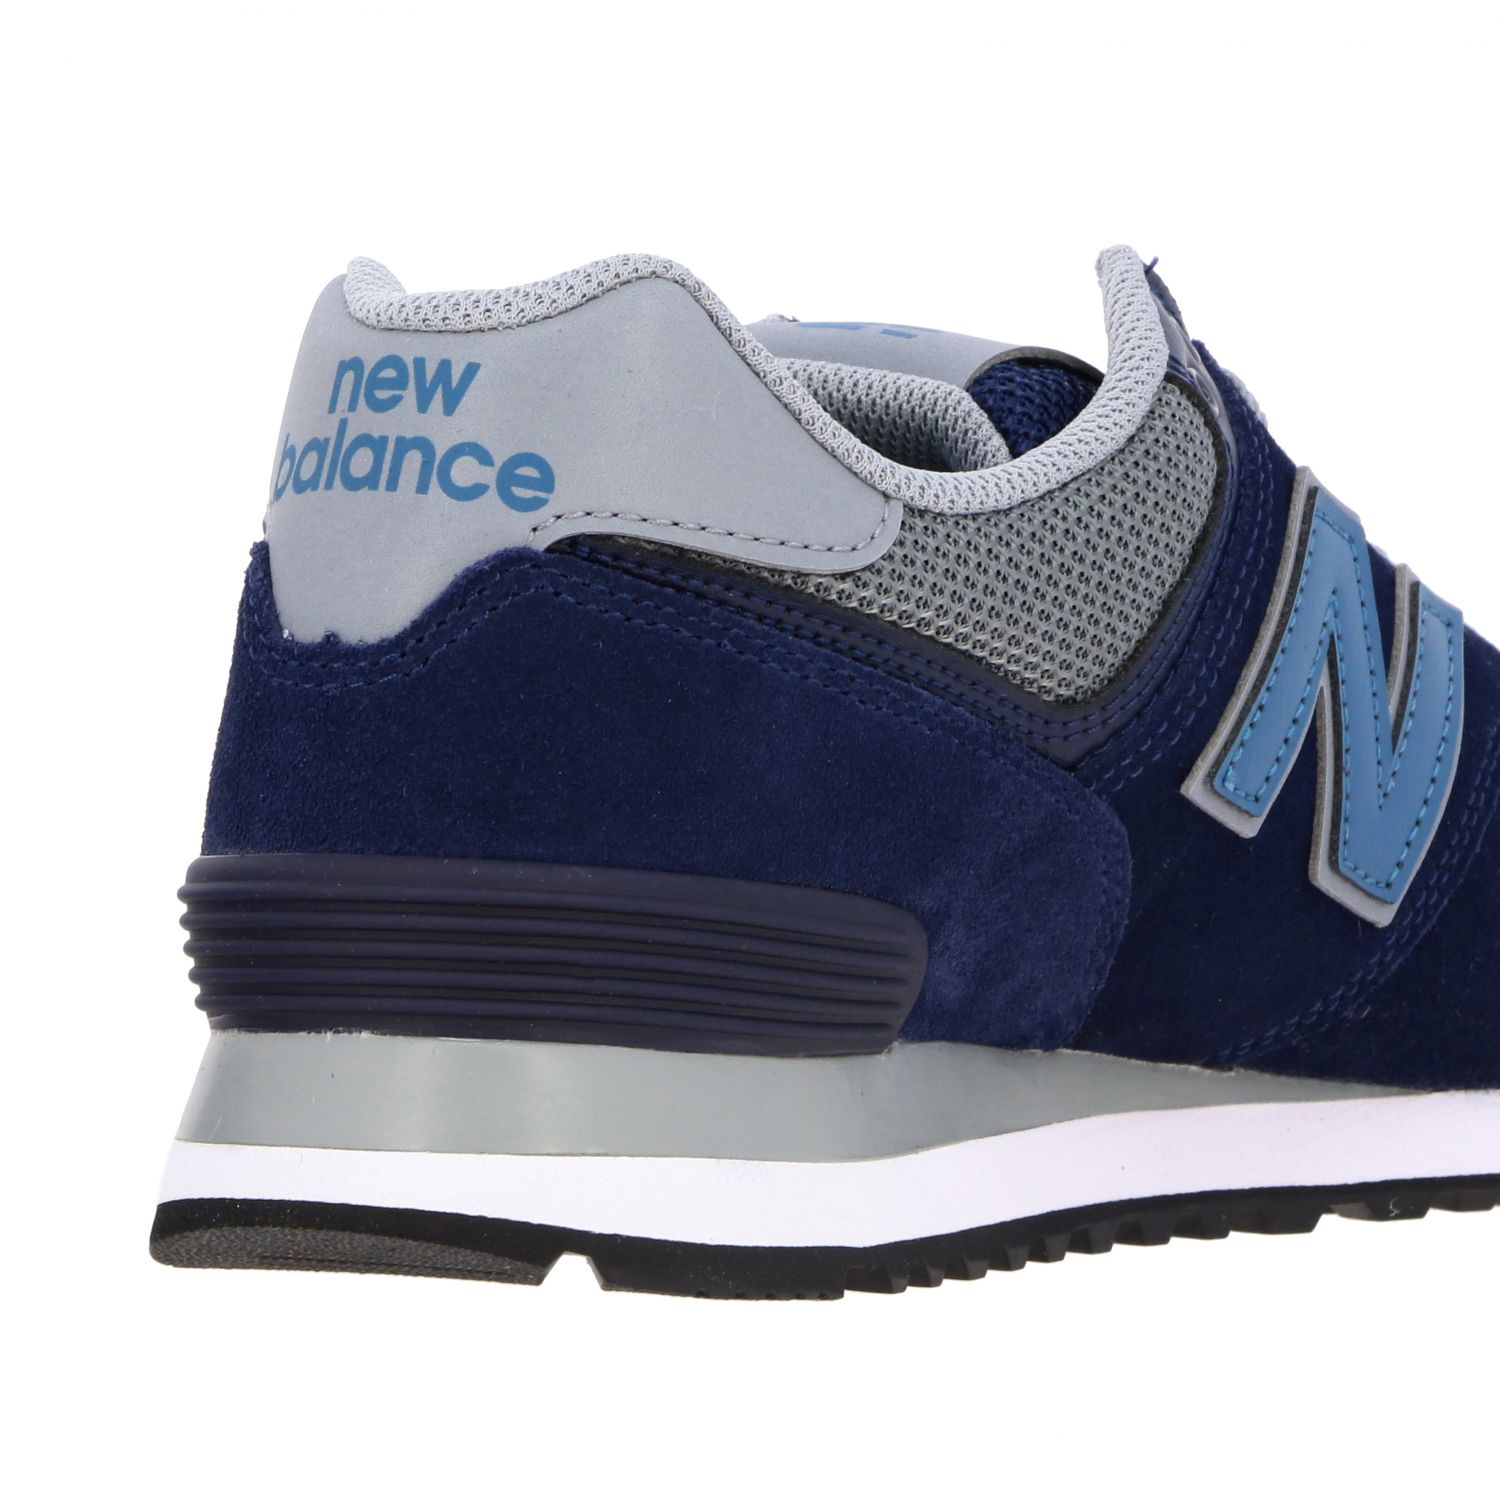 Baskets 574 New Balance en daim et filet contrastés bleu 5